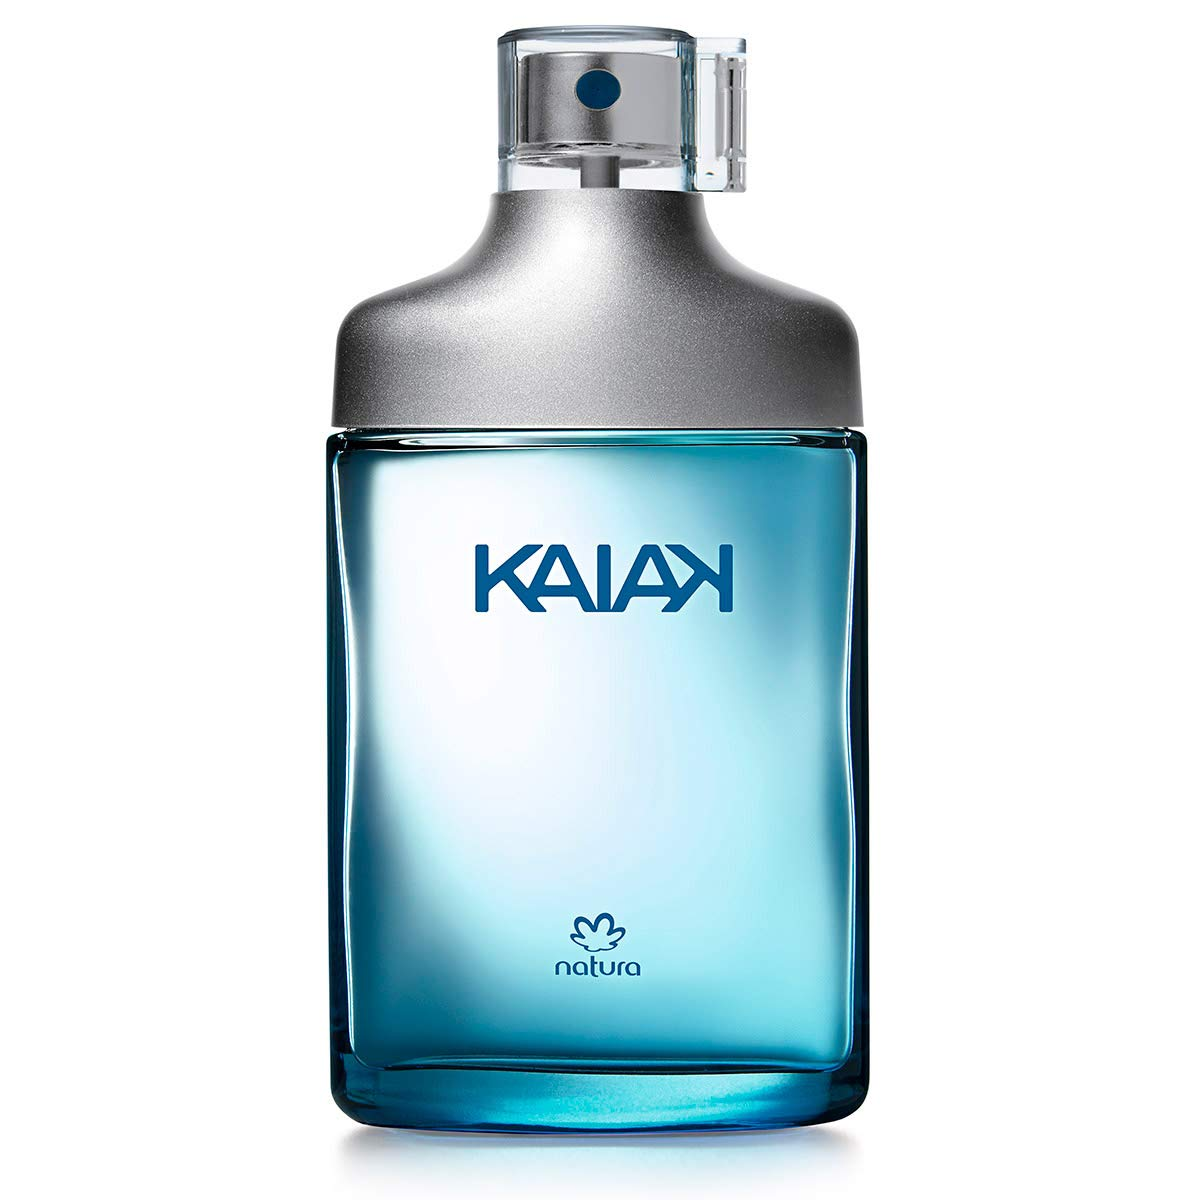 Linha Kaiak Natura - Colonia Tradicional 100 Ml - Natura Kaiak Collection - Classic Eau de